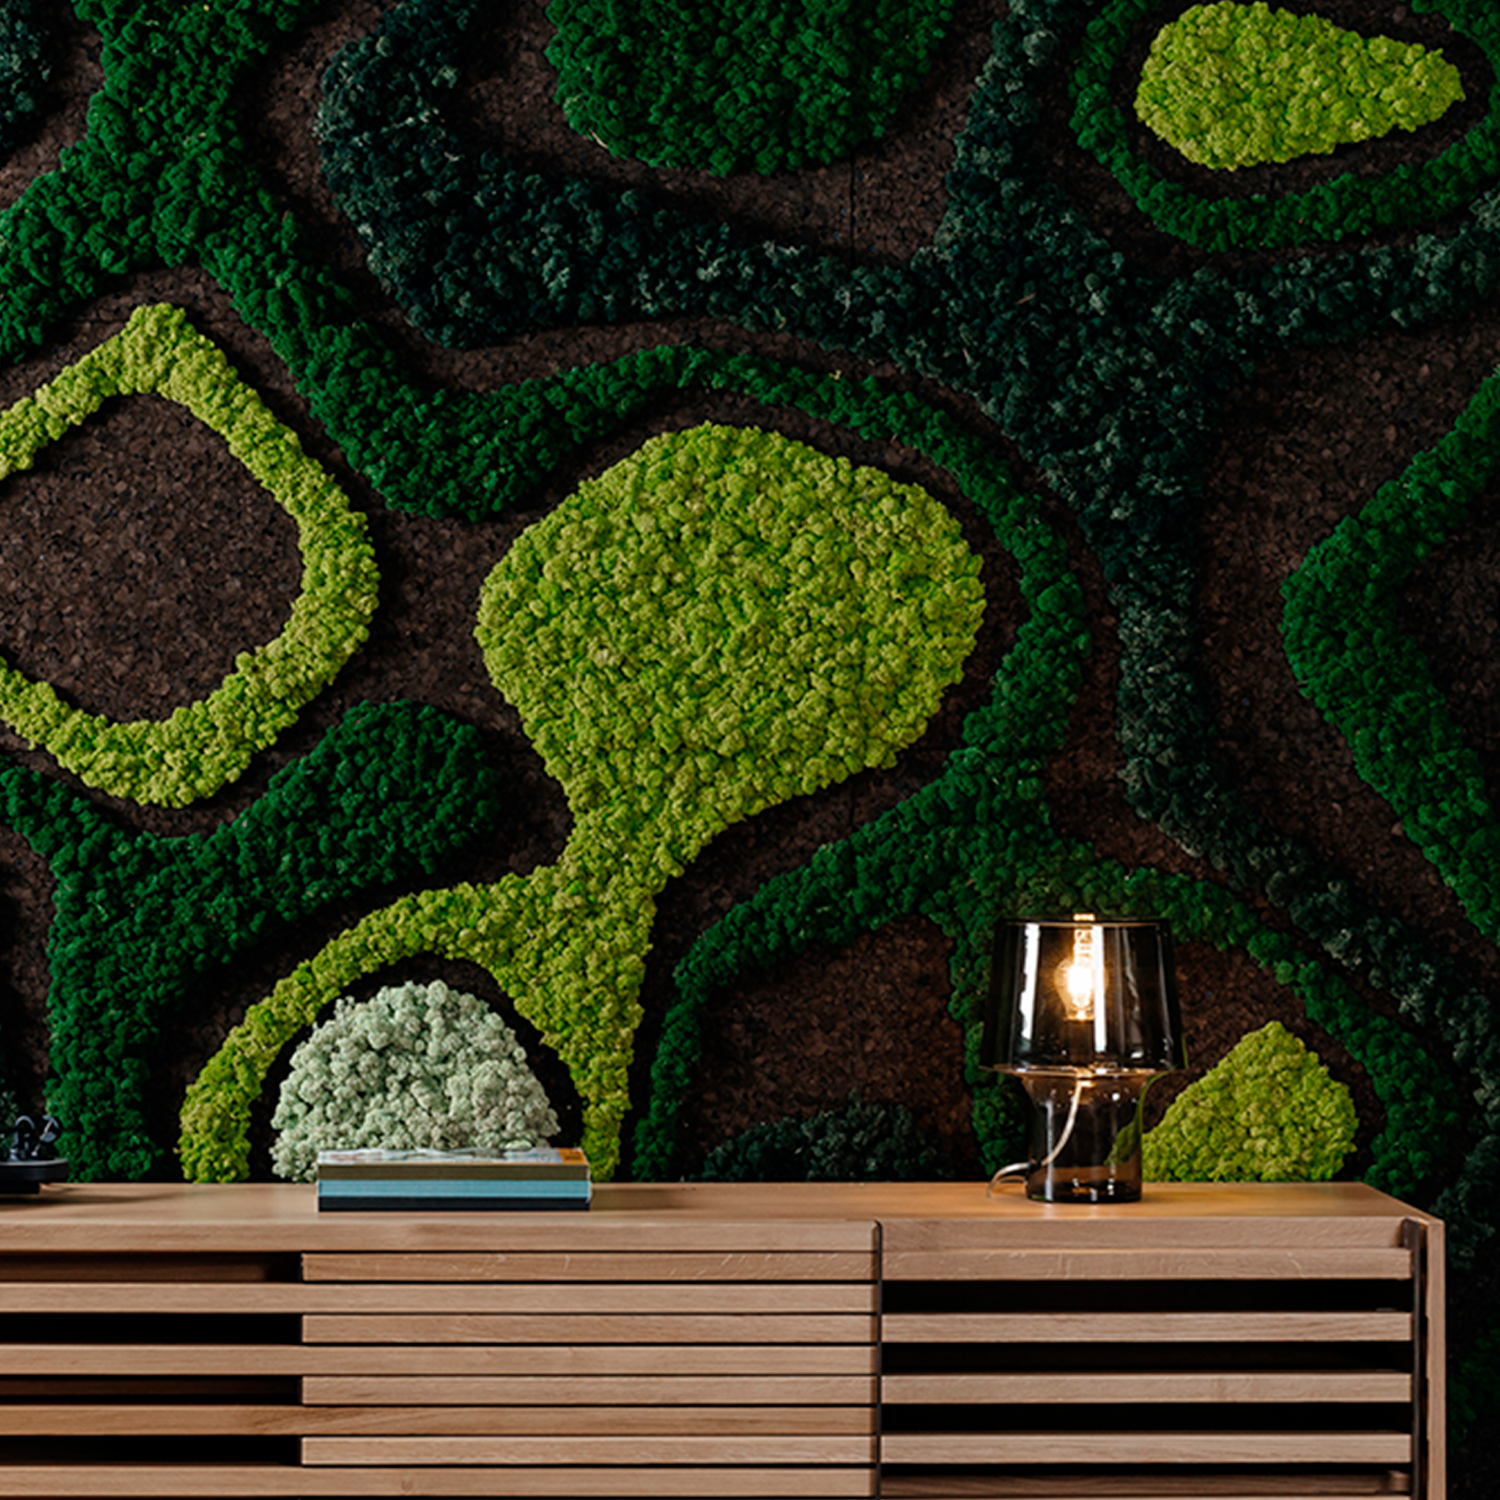 Corkmetaball Green Wall Panels - From a triangular grid to an organic panel. The same element with different thicknesses generates an irregular topography. A great example of simplicity: simple forms that generate complex structures. Easily assembled and with strong aesthetics, it is also a perfect solution for acoustic insulation.  Exploring the symbiosis between low-tech material and high-tech processes. The 100% natural and sustainable expanded cork agglomerate is transformed through generative design algorithms and advanced digital fabrication processes, expressing a new formal aesthetics. This creative and disruptive system not only optimizes cork's thermal and acoustic properties but also adds artistic value to traditional walls. | Matter of Stuff